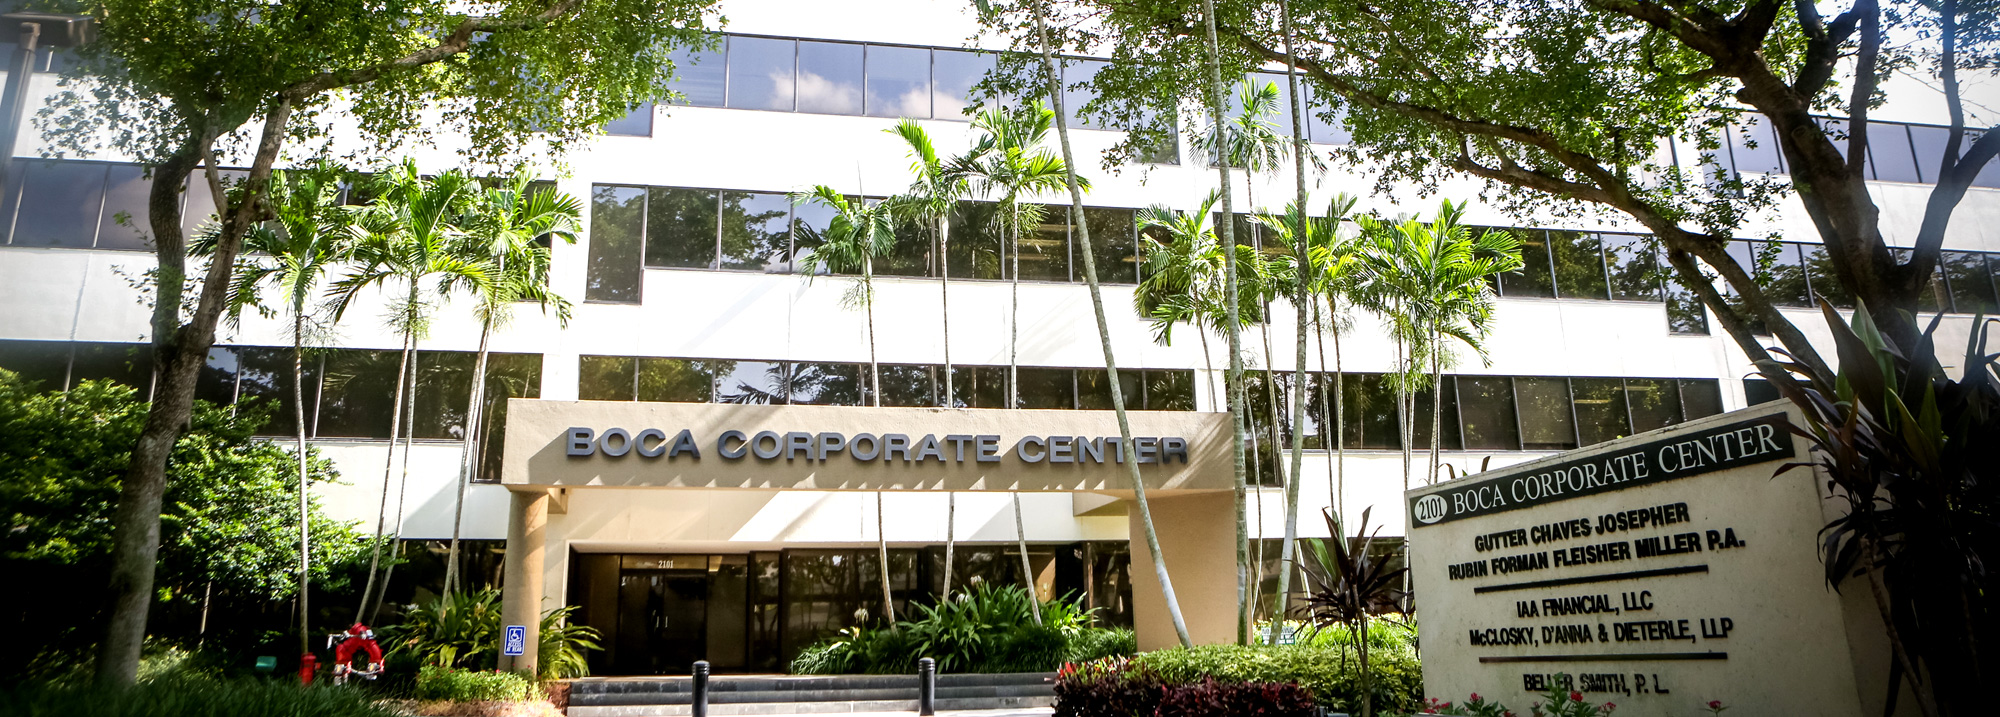 Boca Corporate Center Gutter Chaves Josepher Rubin Forman Fleisher Miller P. A. Offices